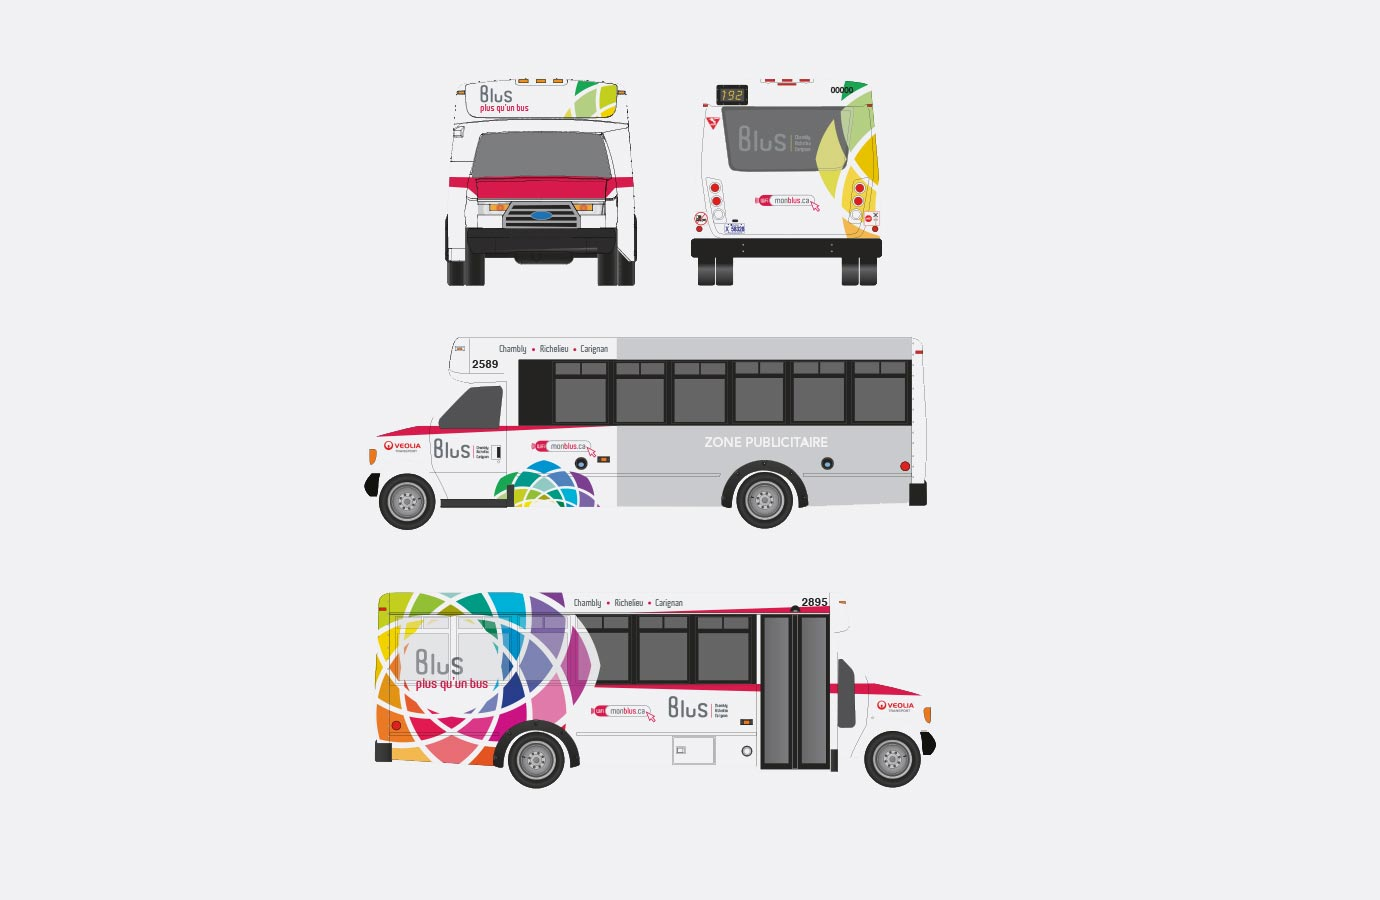 Lettrave des mini-autobus Blus, version multicolore